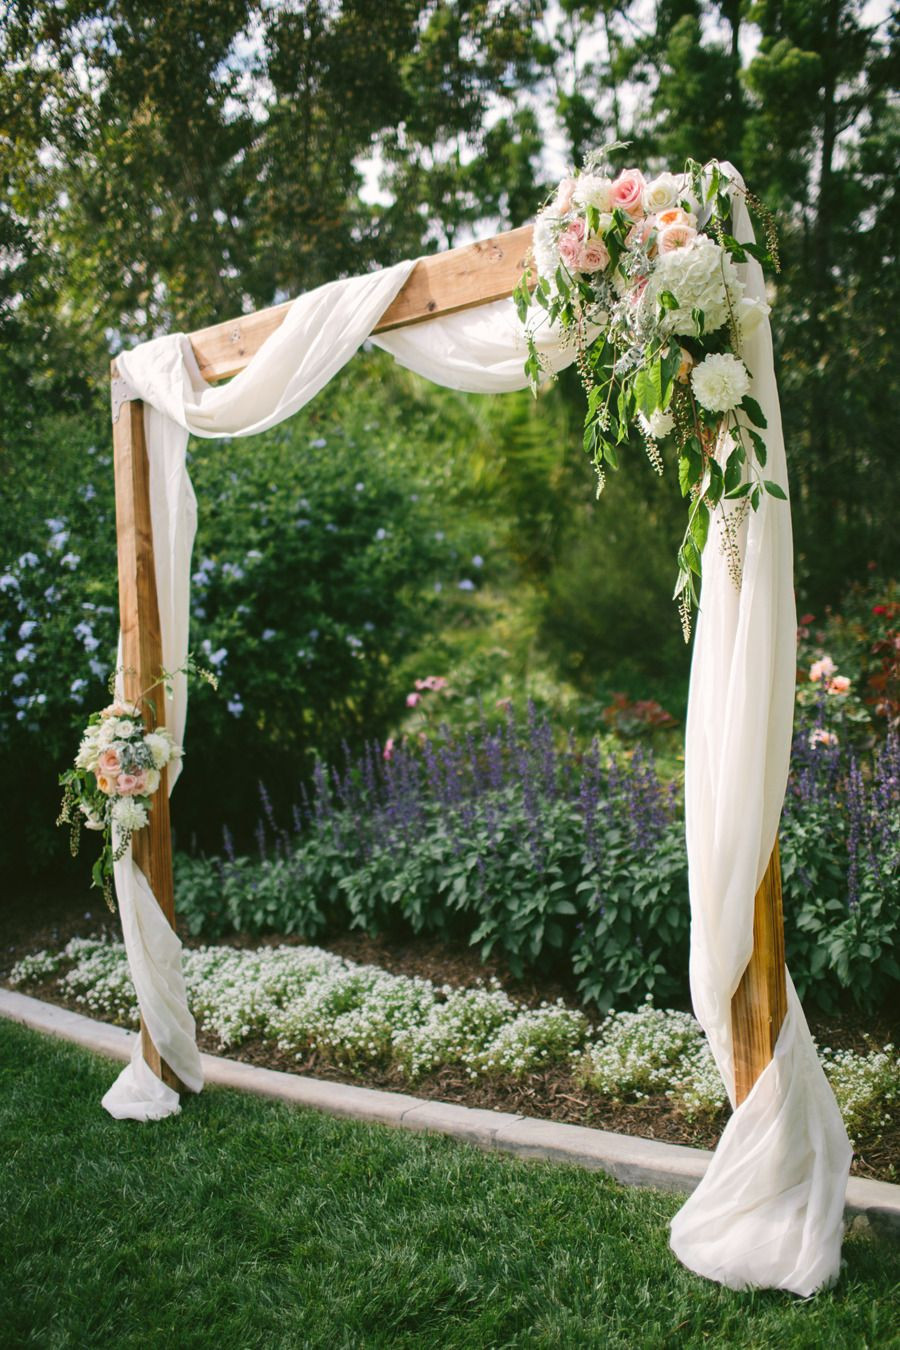 Best ideas about Wedding Arch DIY . Save or Pin 30 Best Floral Wedding Altars & Arches Decorating Ideas Now.